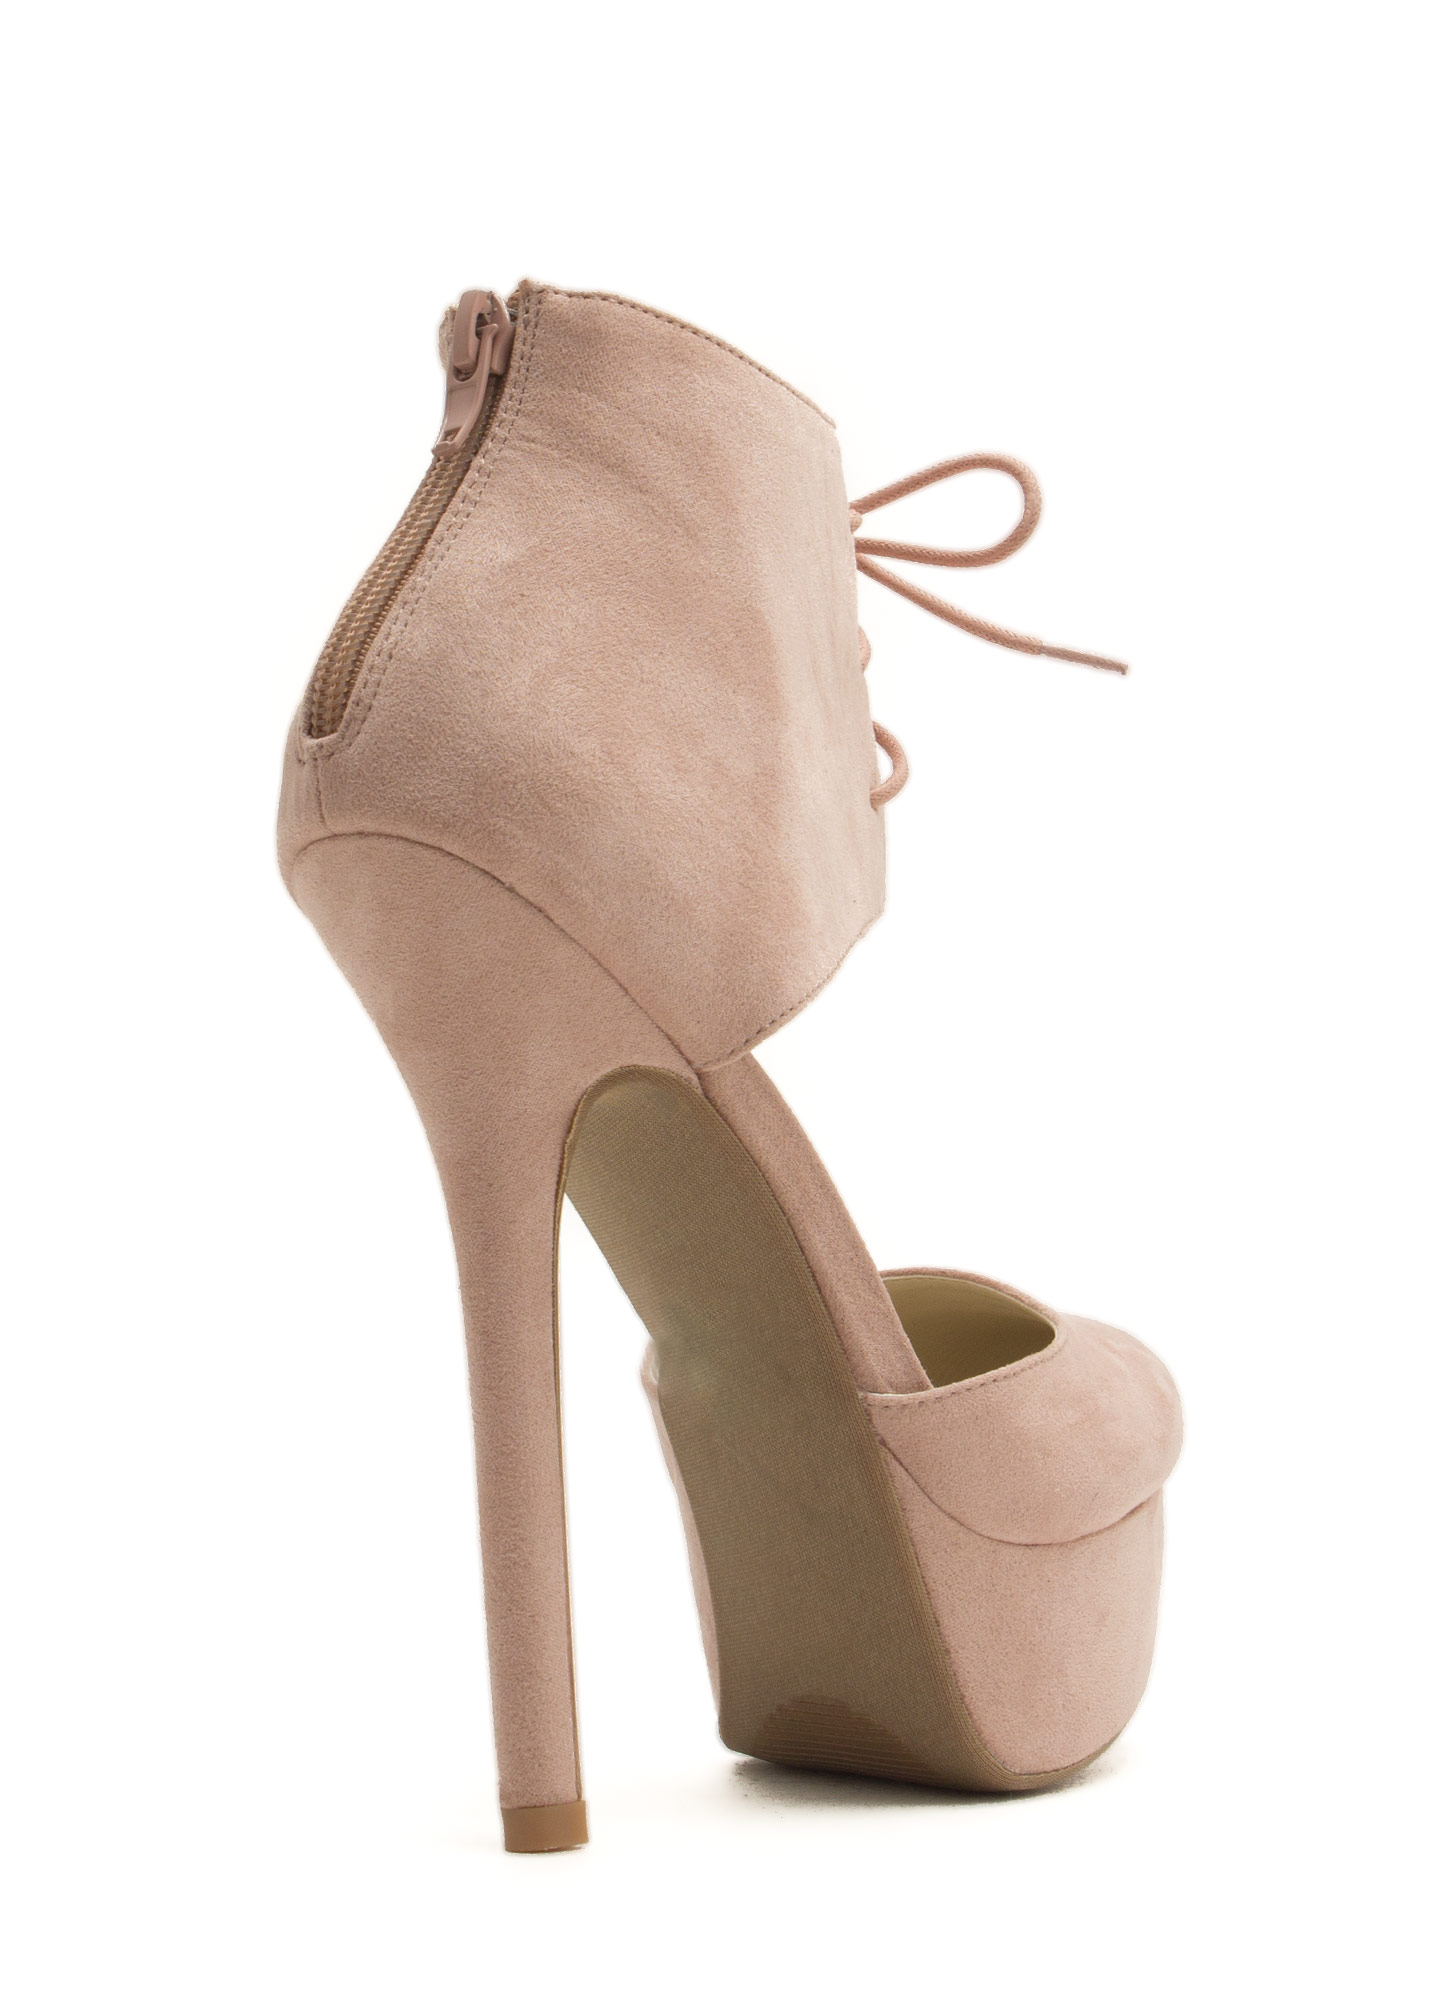 Wrapped Lace-Up Platform Heels NUDE